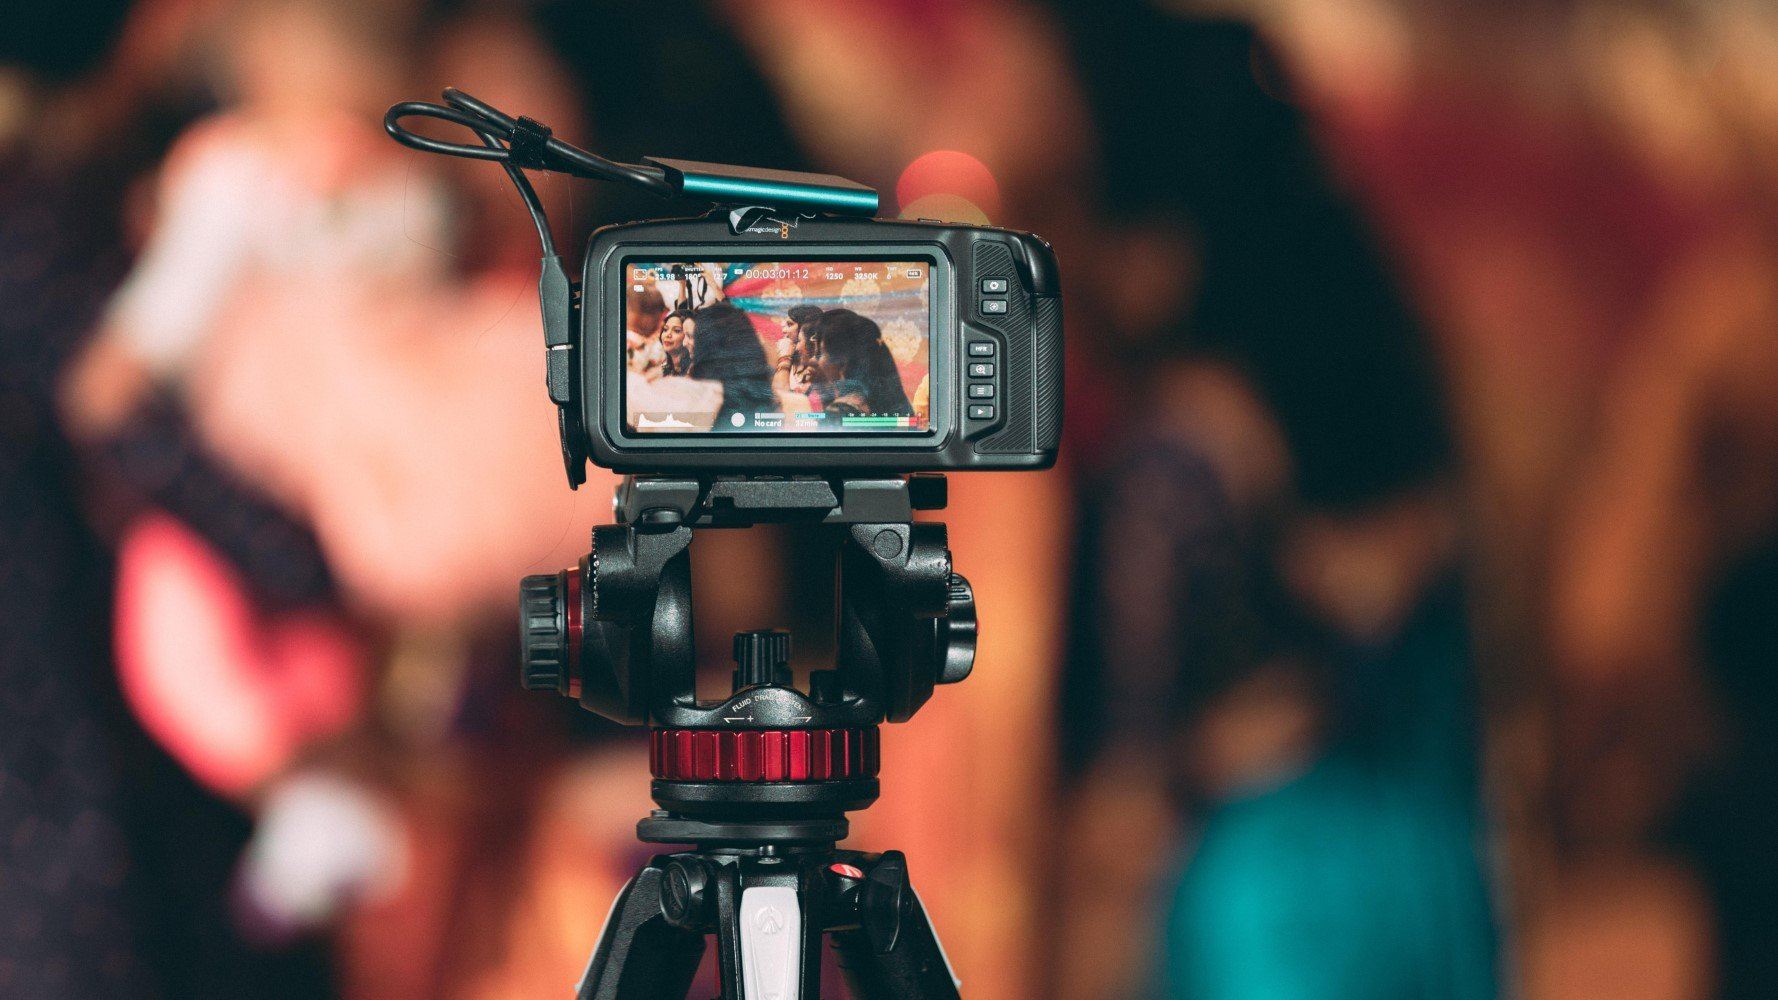 HAVING THE RIGHT EQUIPMENT IS ESSENTIAL TO A SUCCESSFUL LIVESTREAM